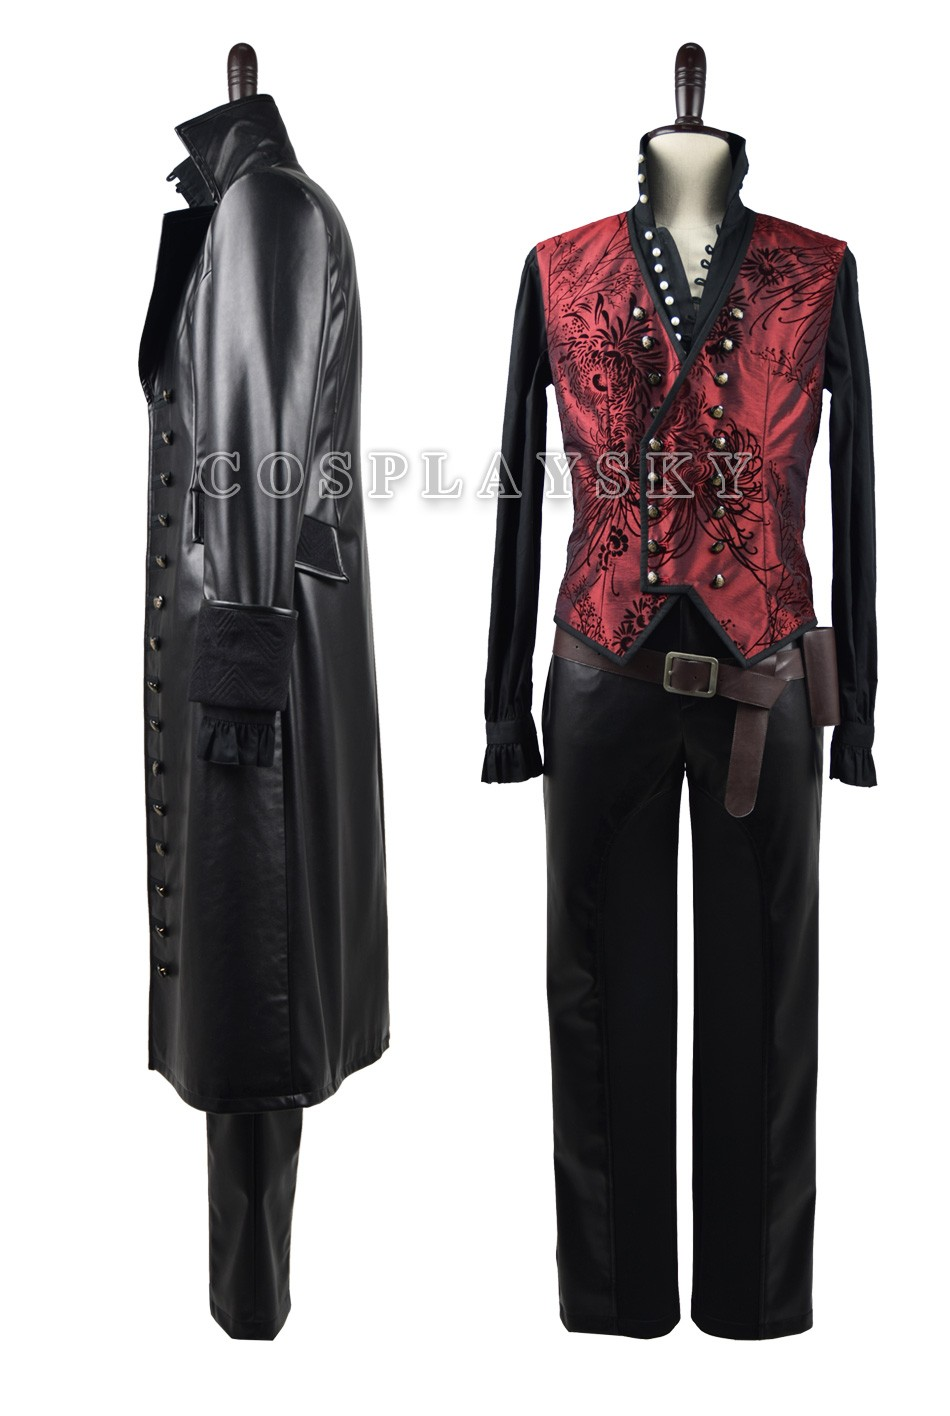 Once Upon A Time Captain Hook Cosplay Costume With Red Vest Halloween Costume for Men_02